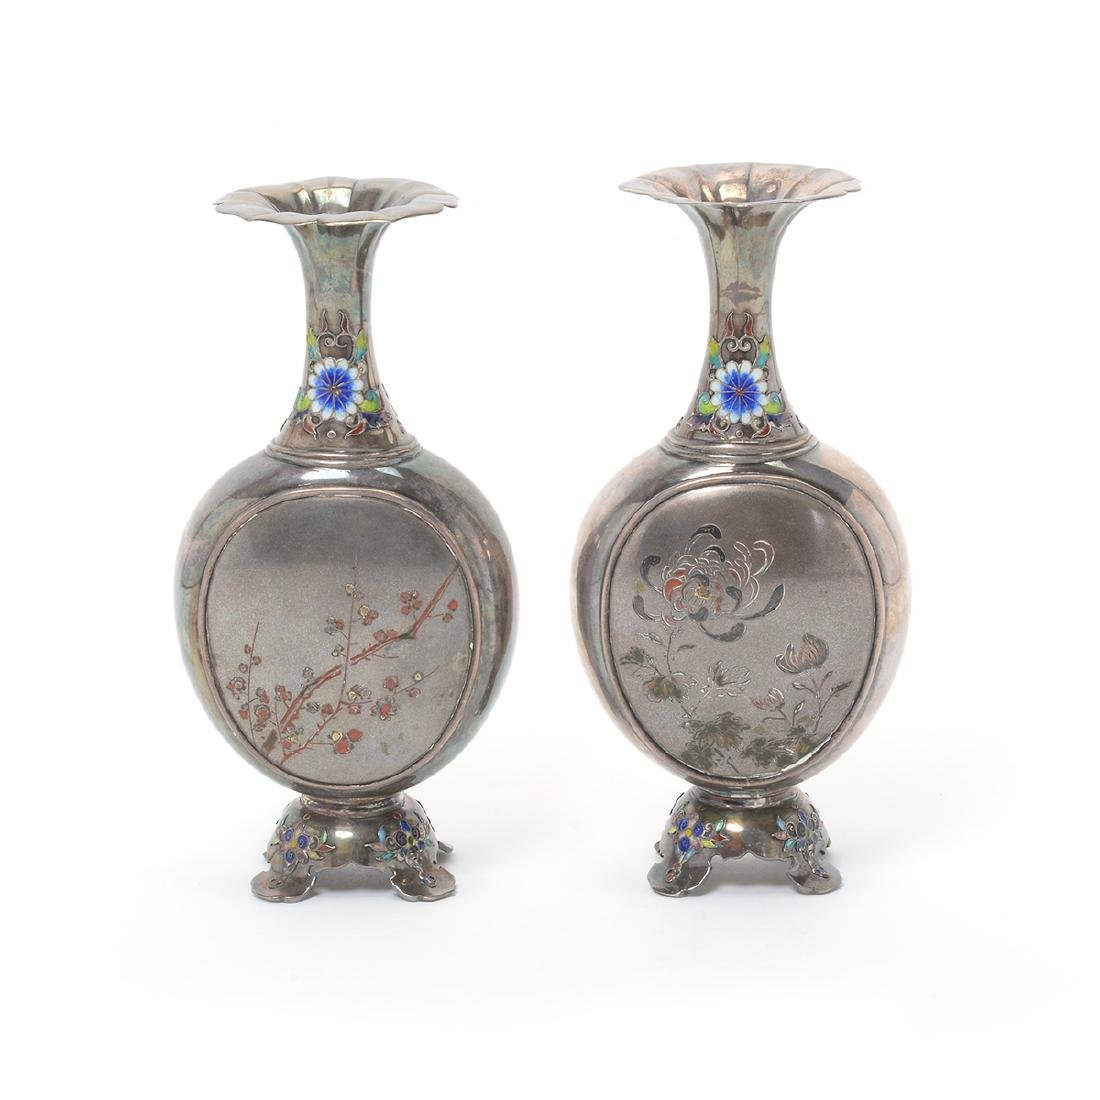 Pair of Small Japanese Enameled Silver Vases